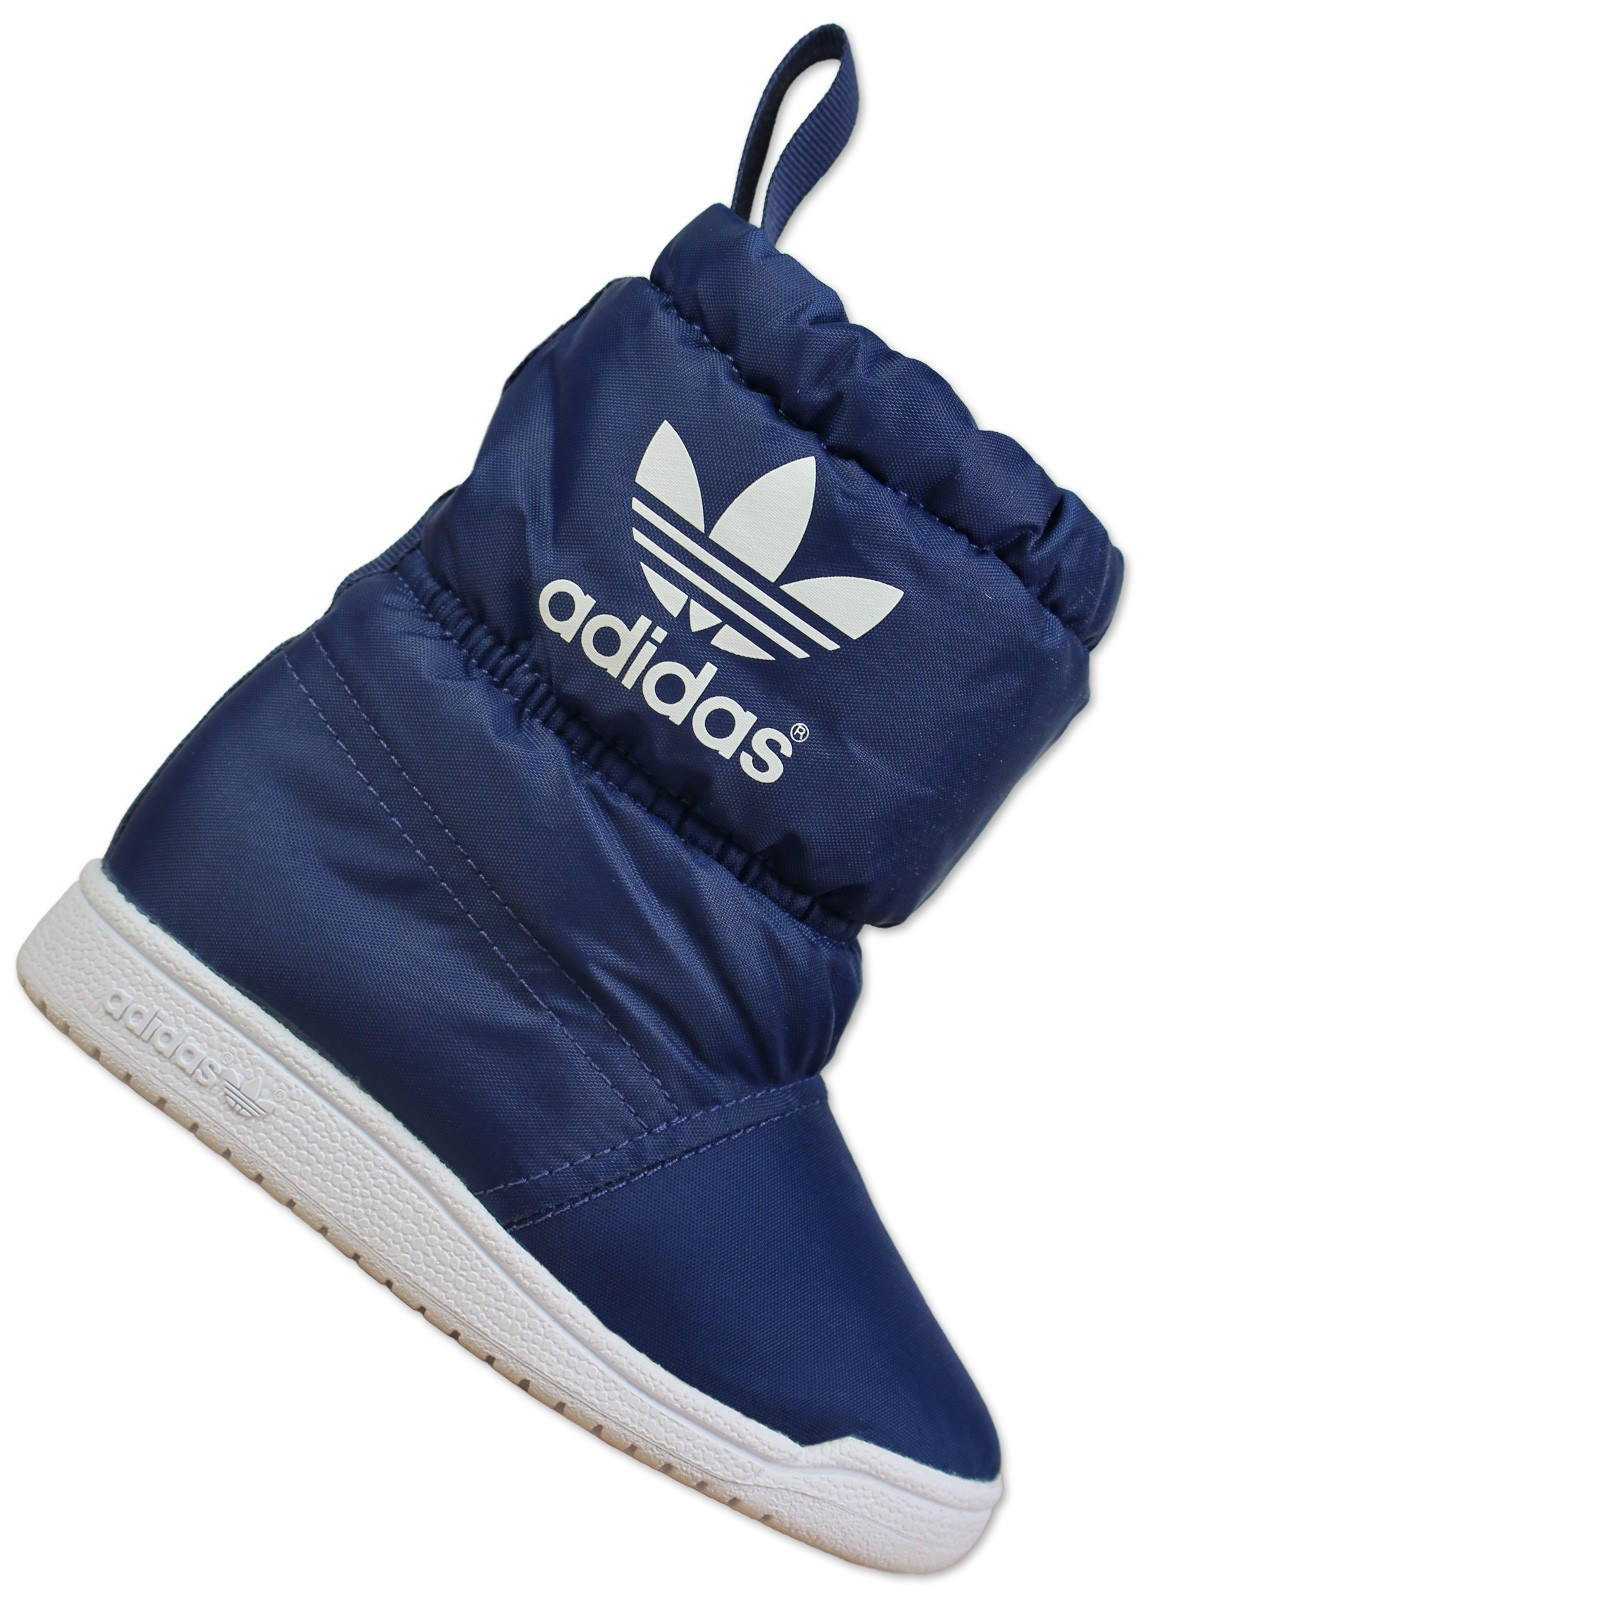 adidas originals baby winter boot kinder stiefel schnee. Black Bedroom Furniture Sets. Home Design Ideas